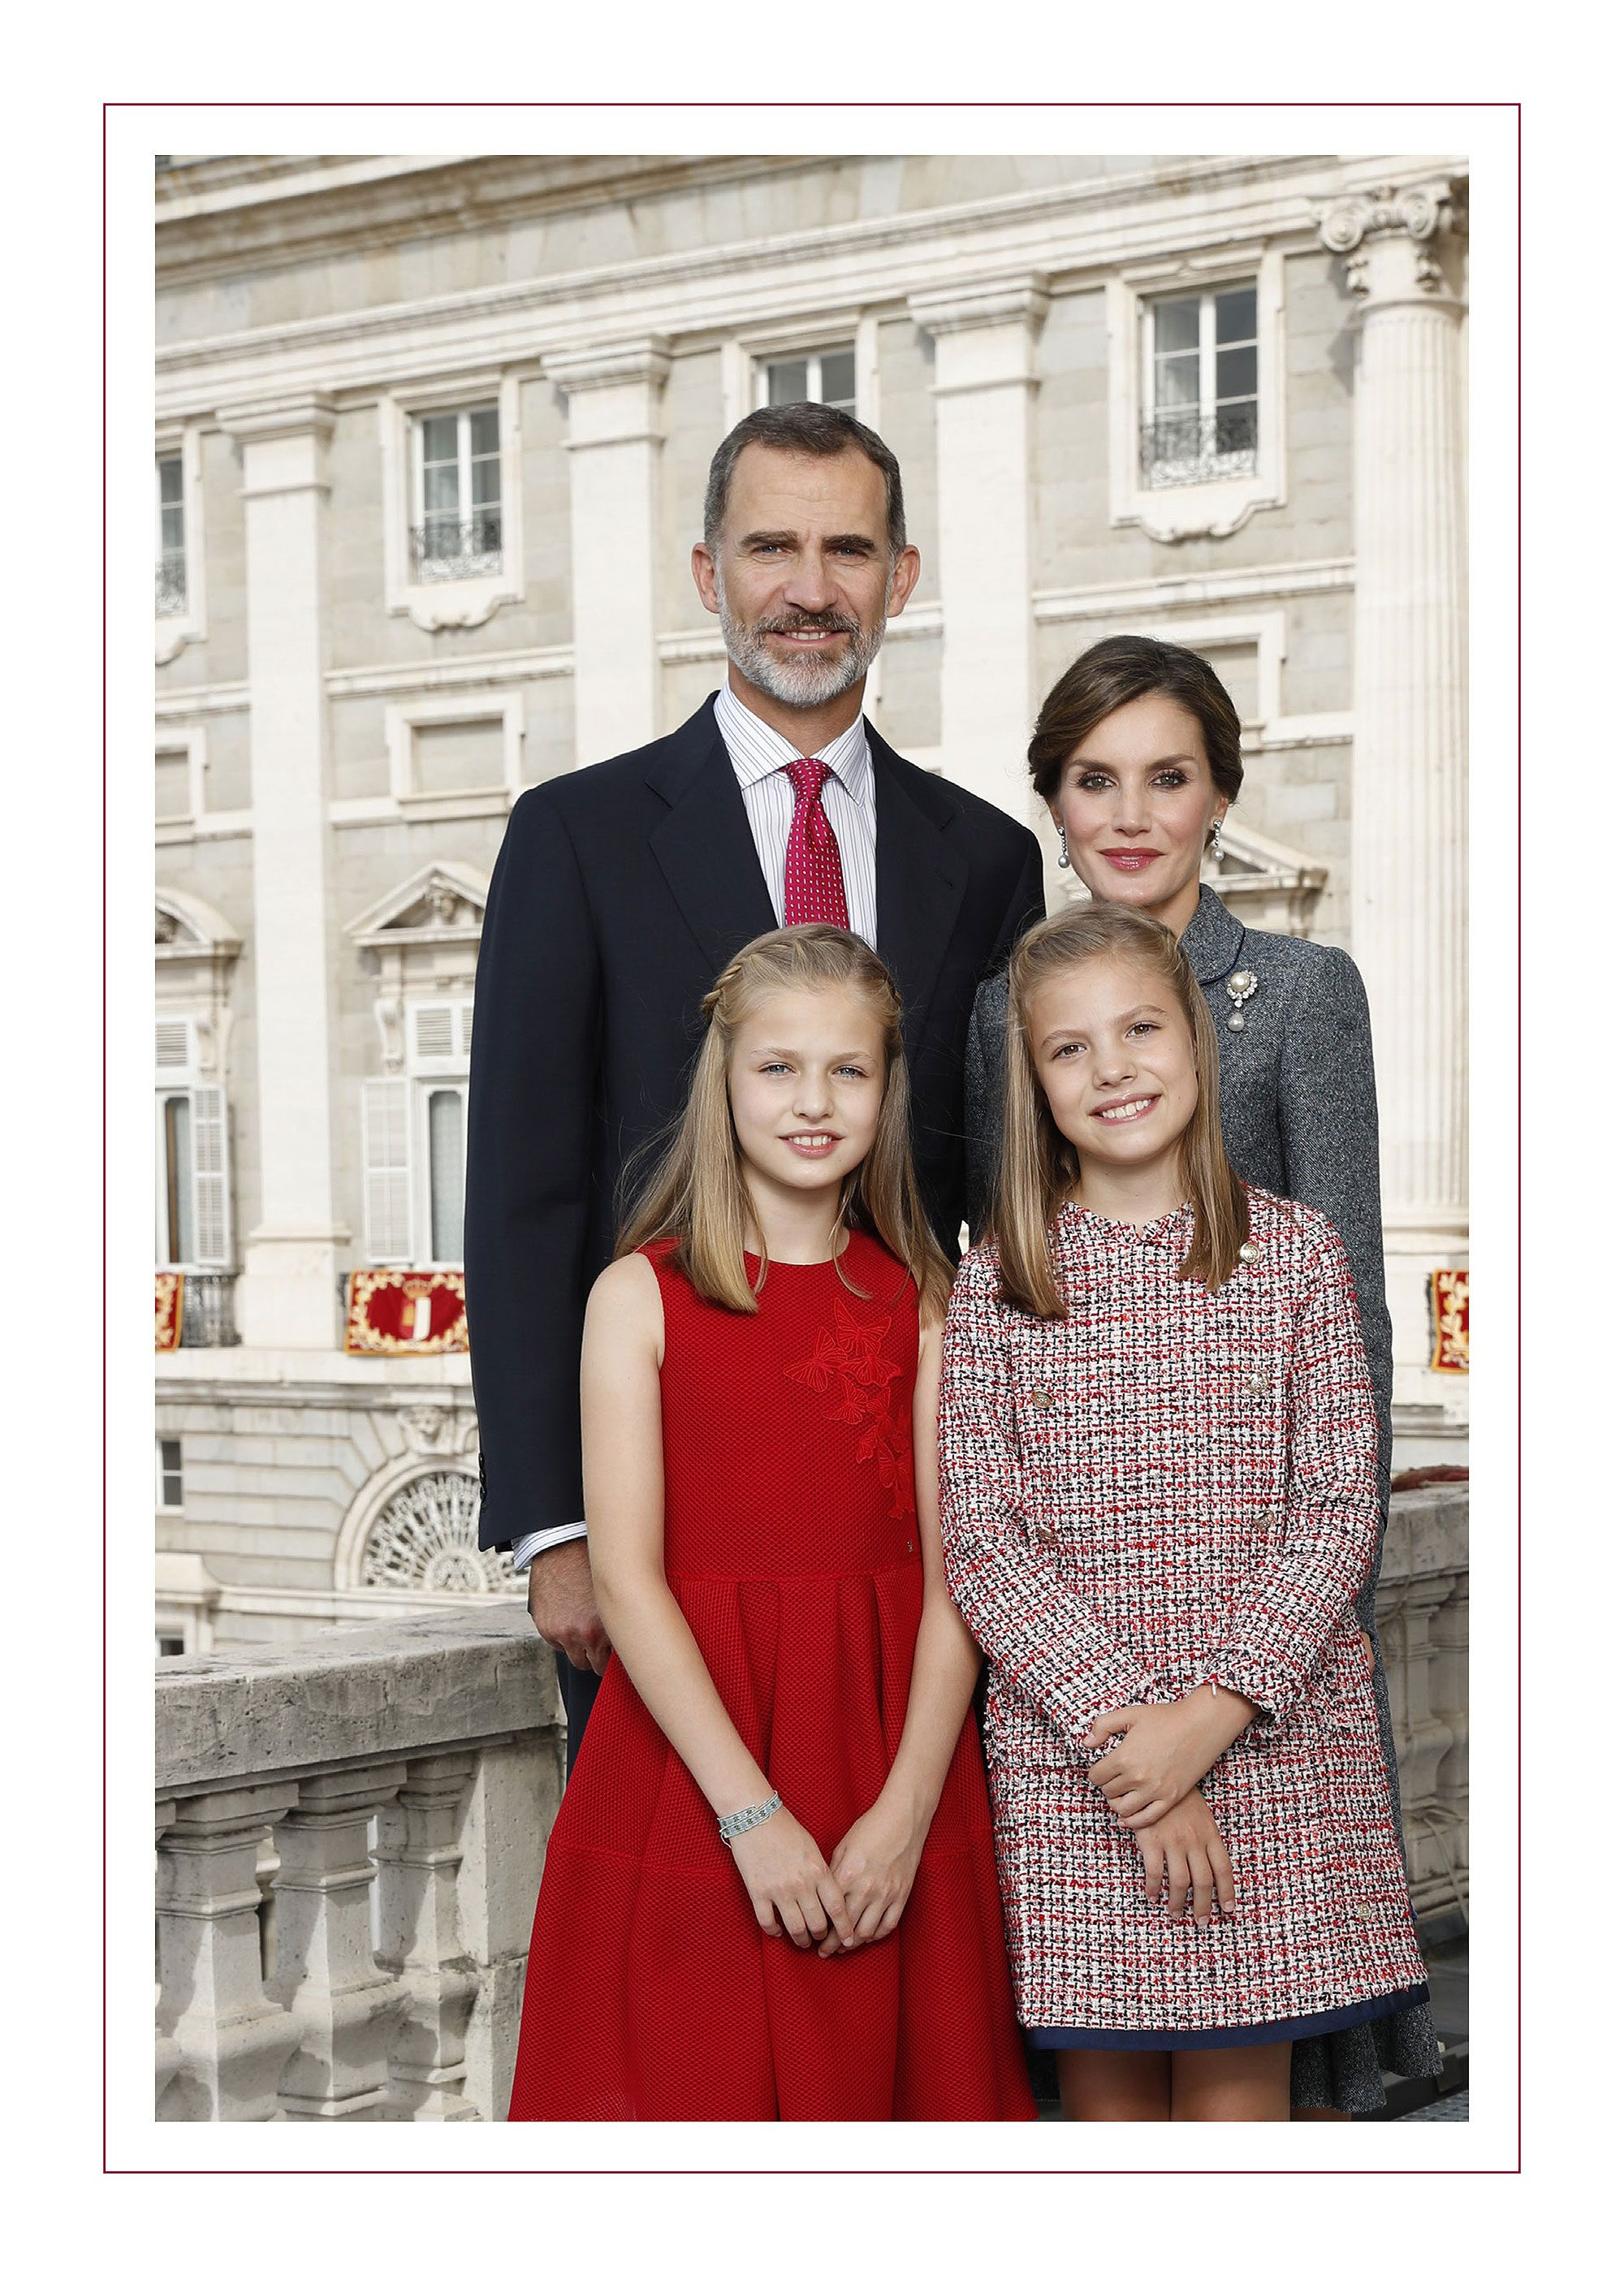 See The Christmas Cards The Royal Families Have Sent This Year